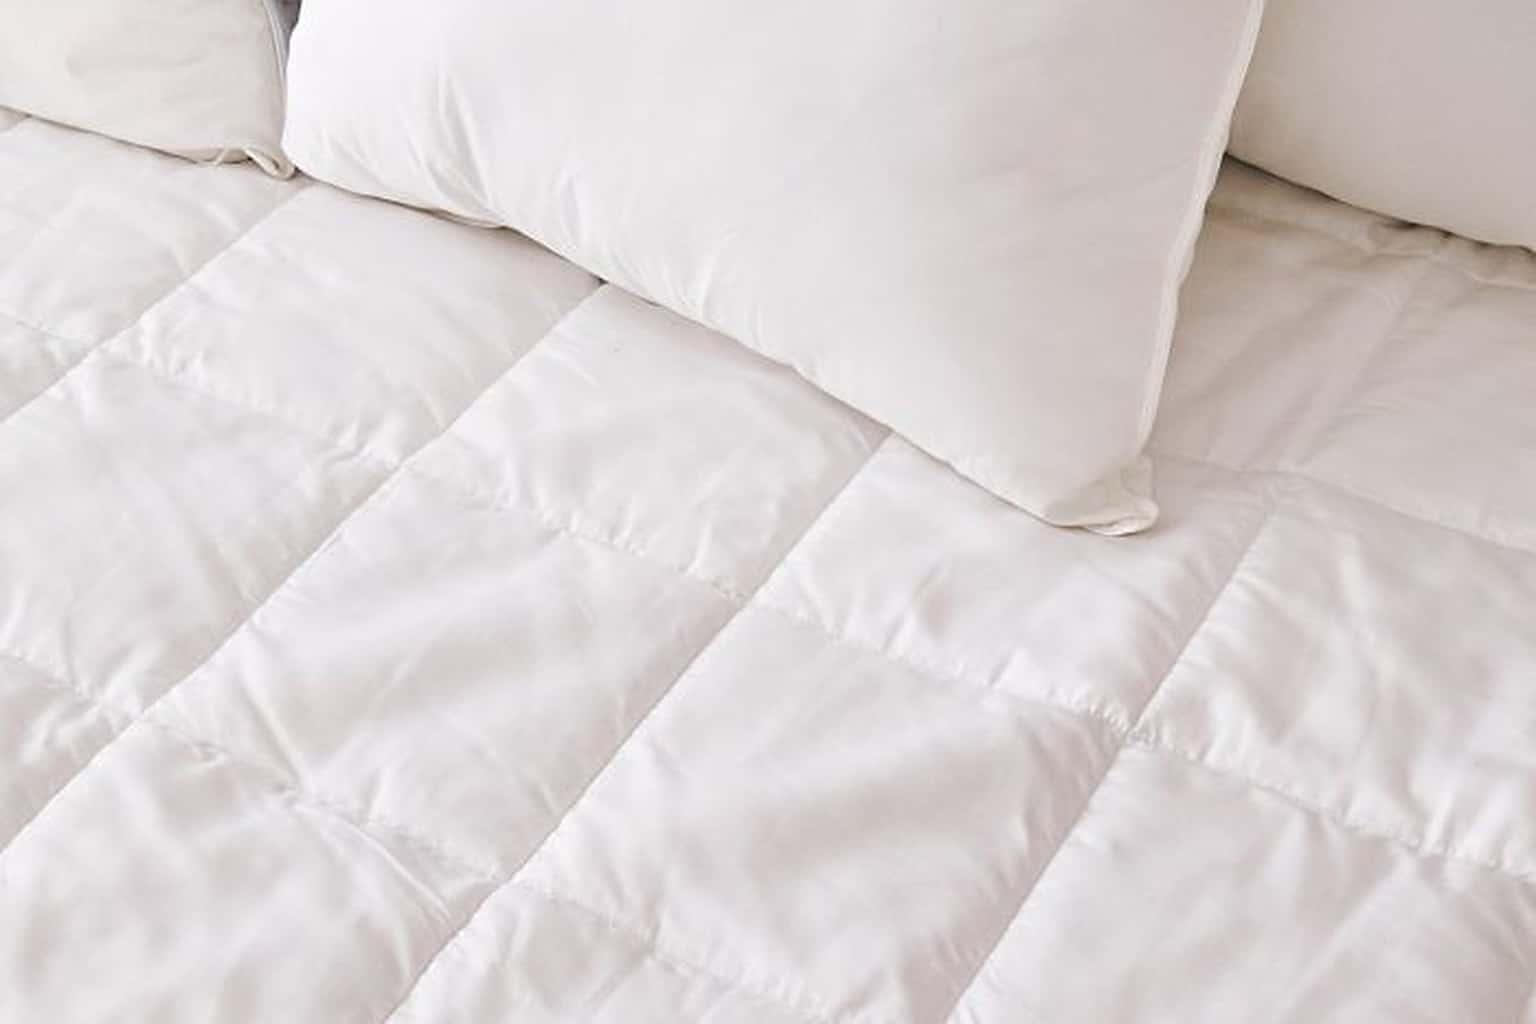 Slumber Cloud Nacreous Mattress Pad review - white sheet and white pillow